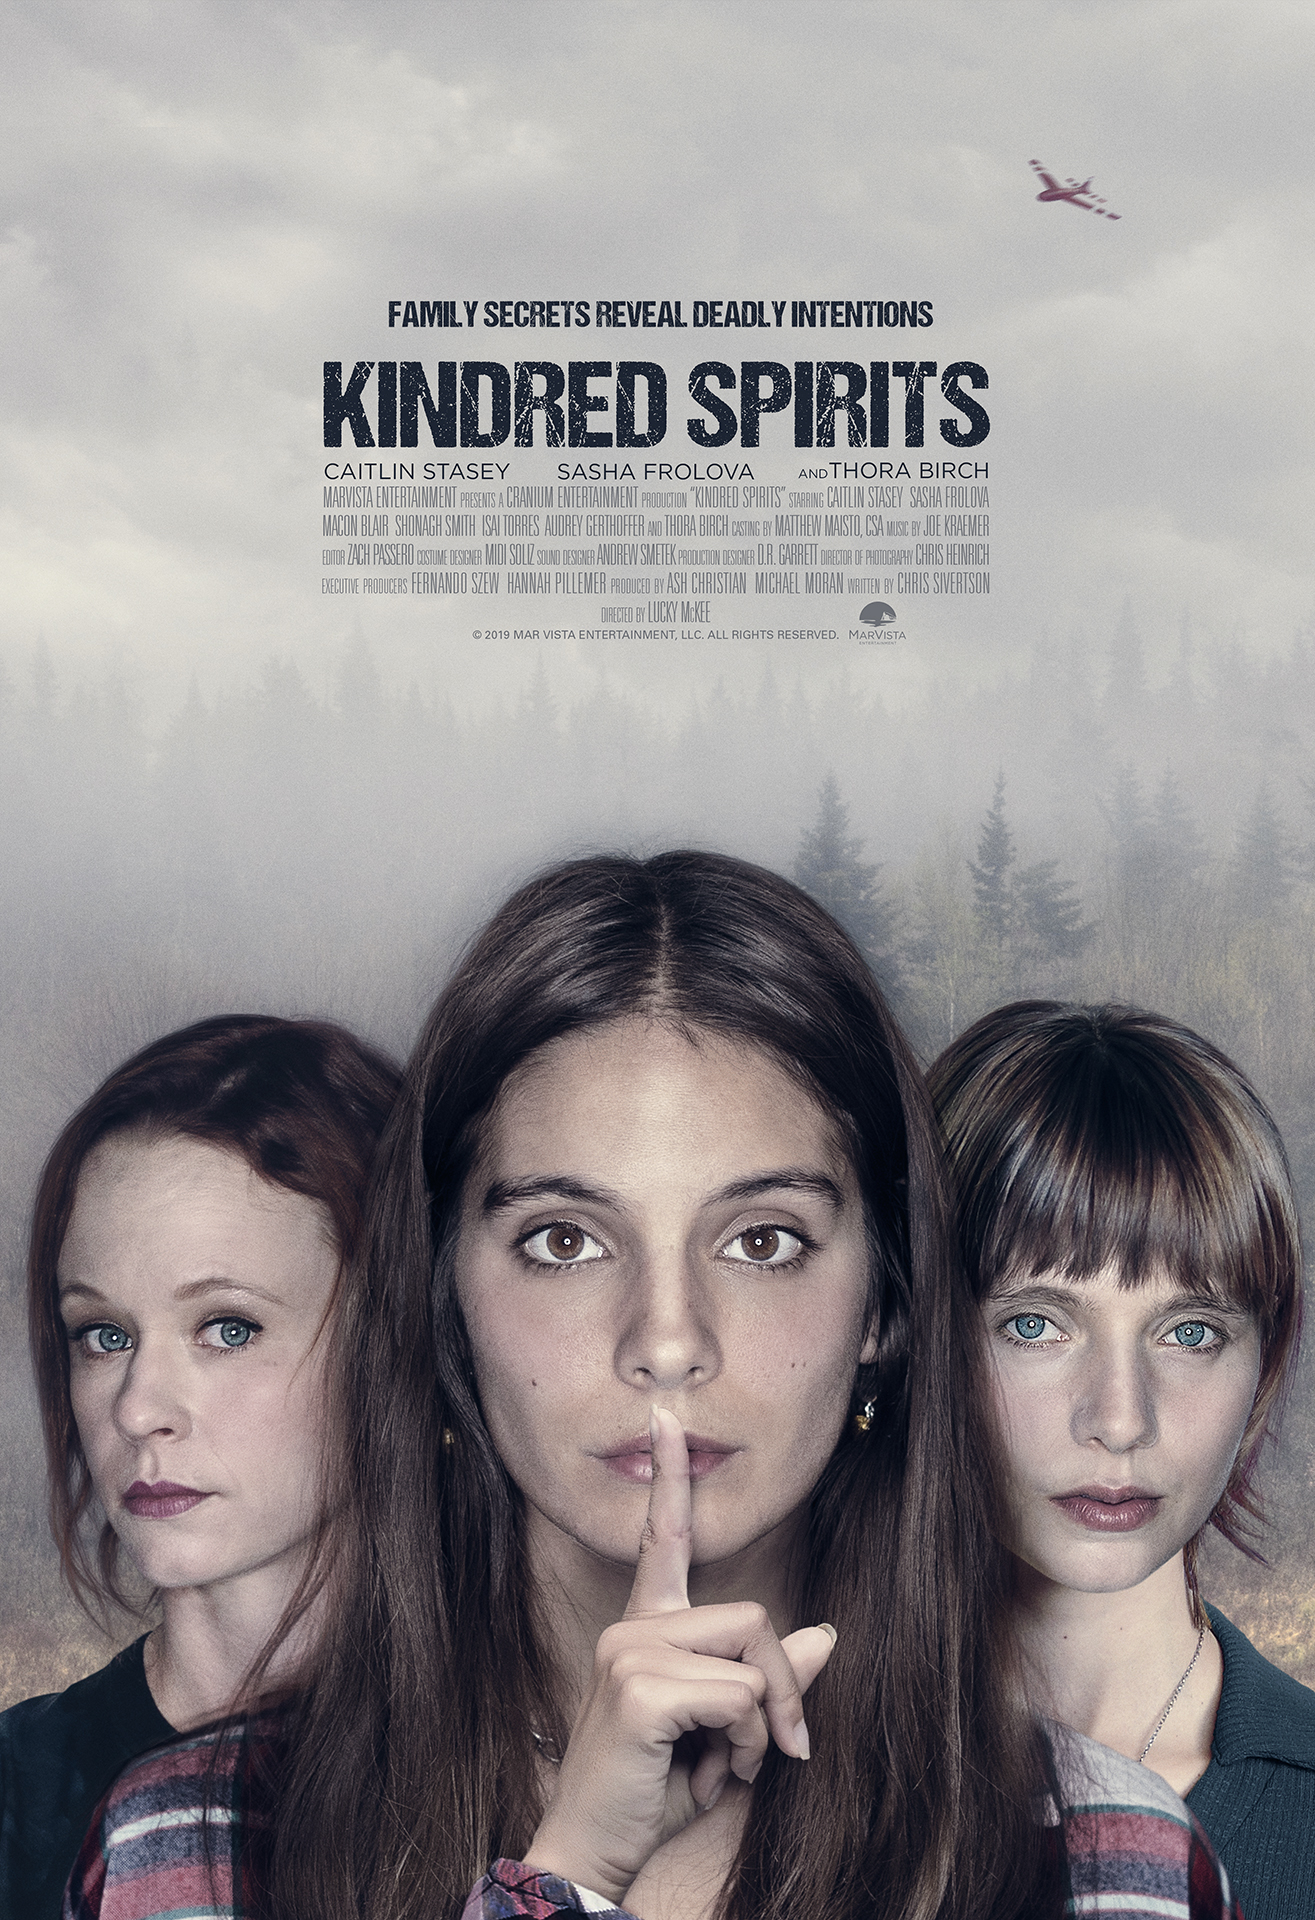 Kindred.Spirits.S04E07.The.Trunk.iNTERNAL.720p.WEB.x264-ROBOTS